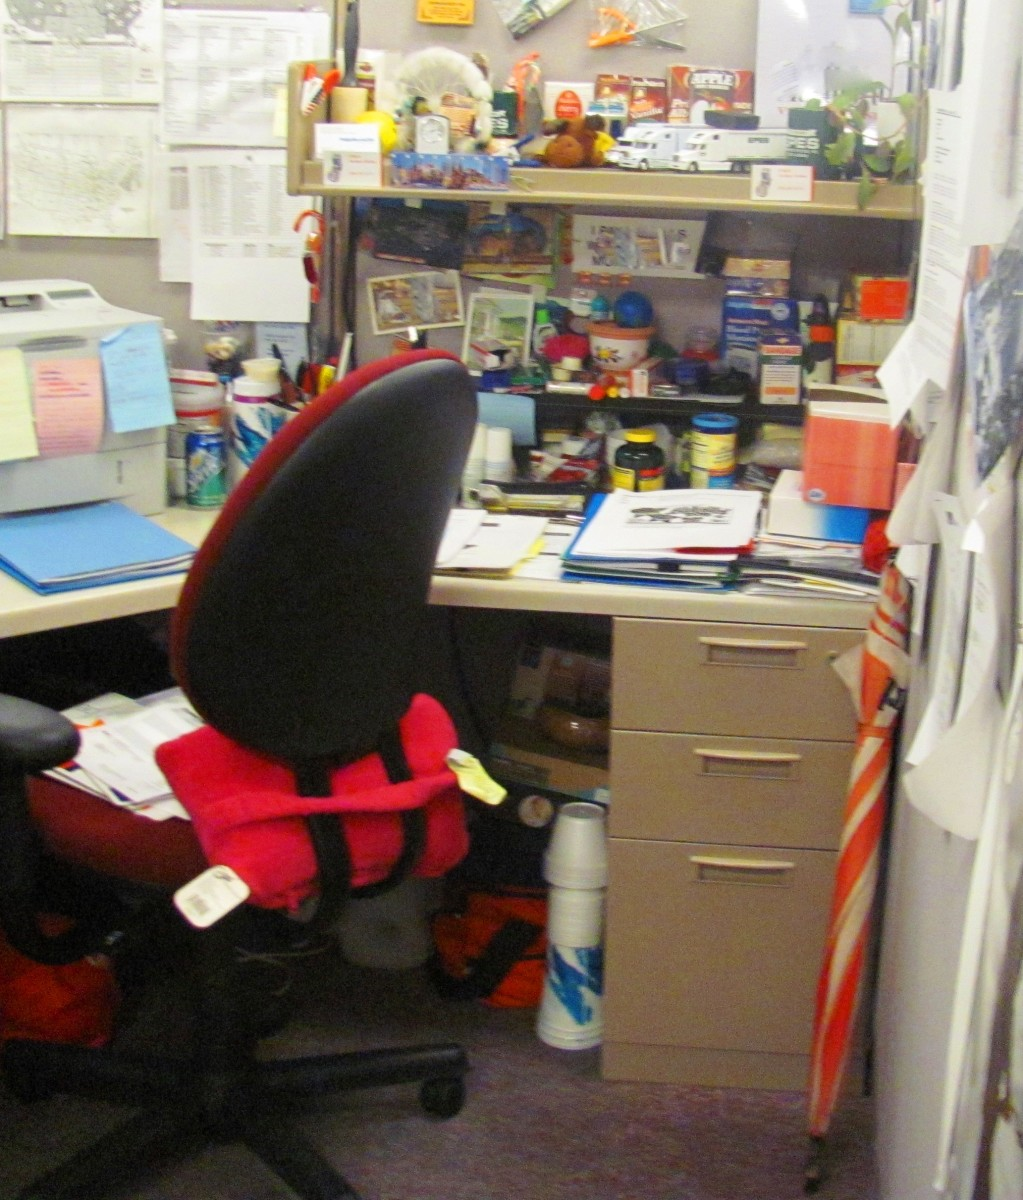 Office Cubicle Survival:  Courtesy, Productivity, and Stress